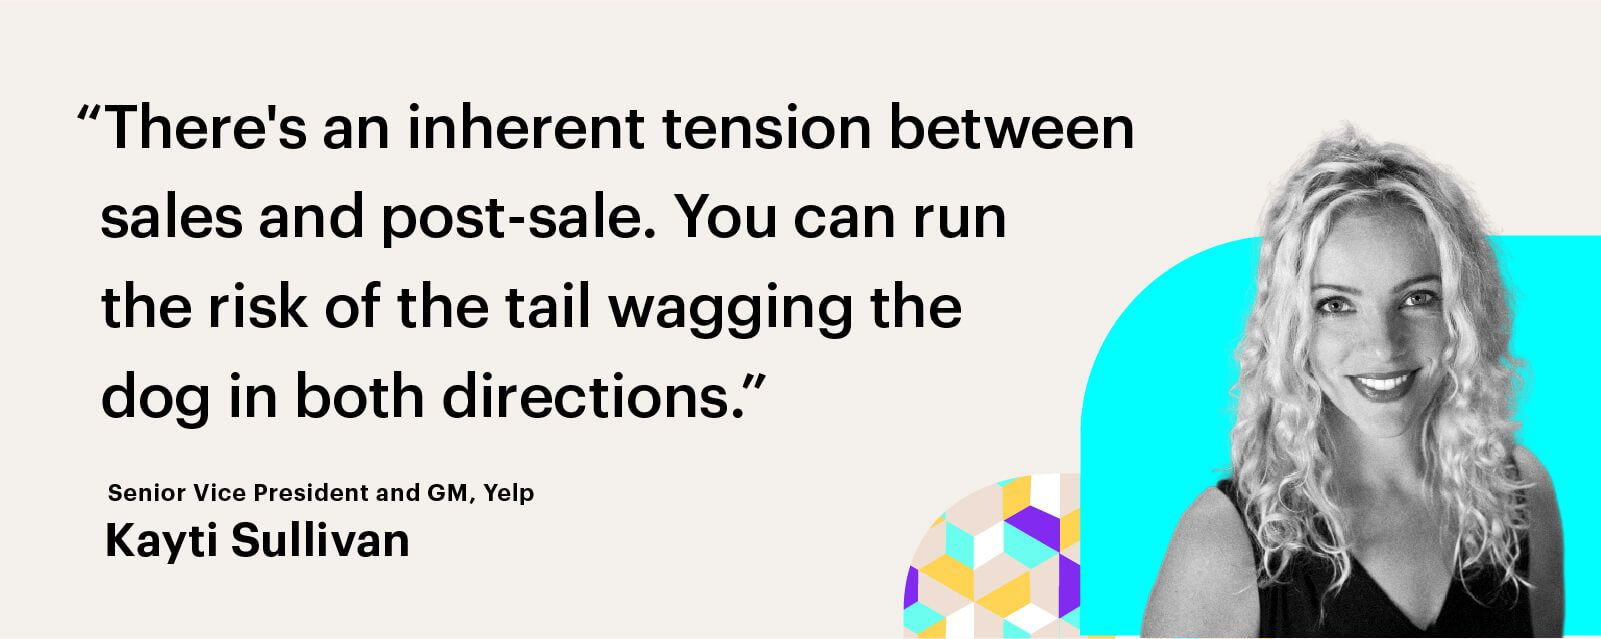 sales and post-sale inherent tension